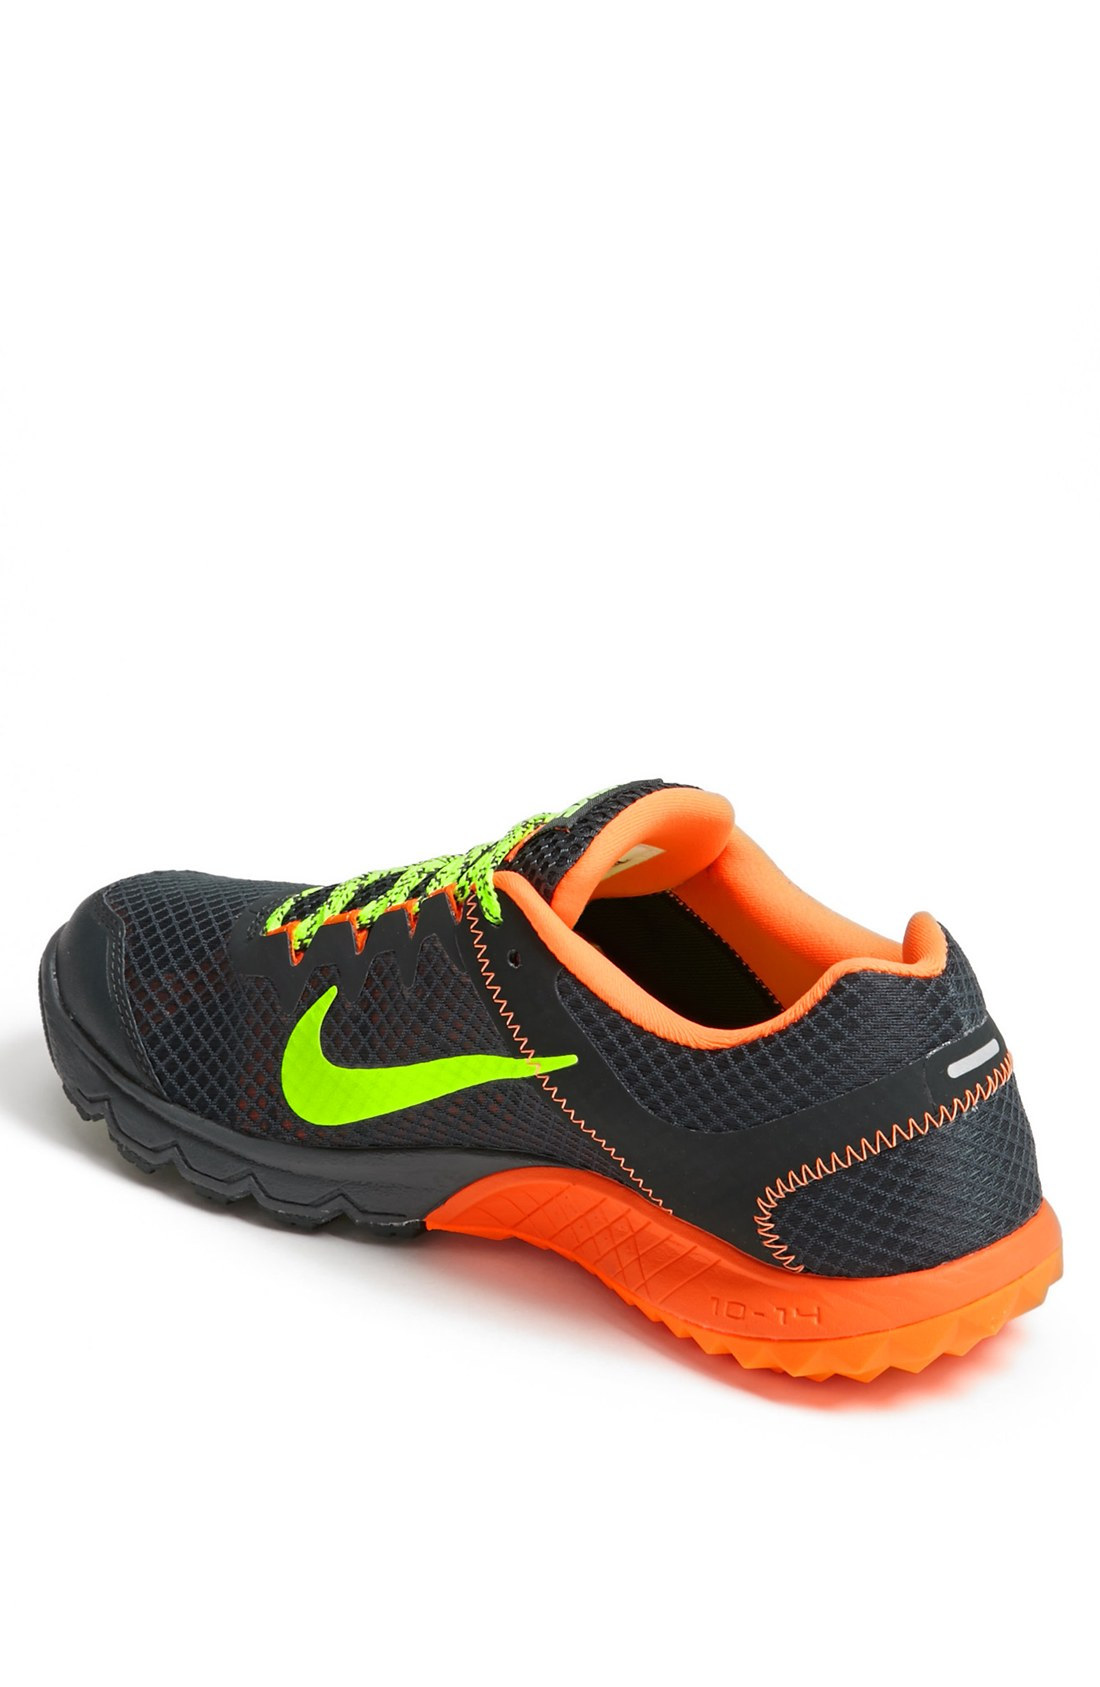 cheap for discount 460ca ddb67 Wmns Nike Zoom Wild Horse. Favorably Trail Running Shoes ...